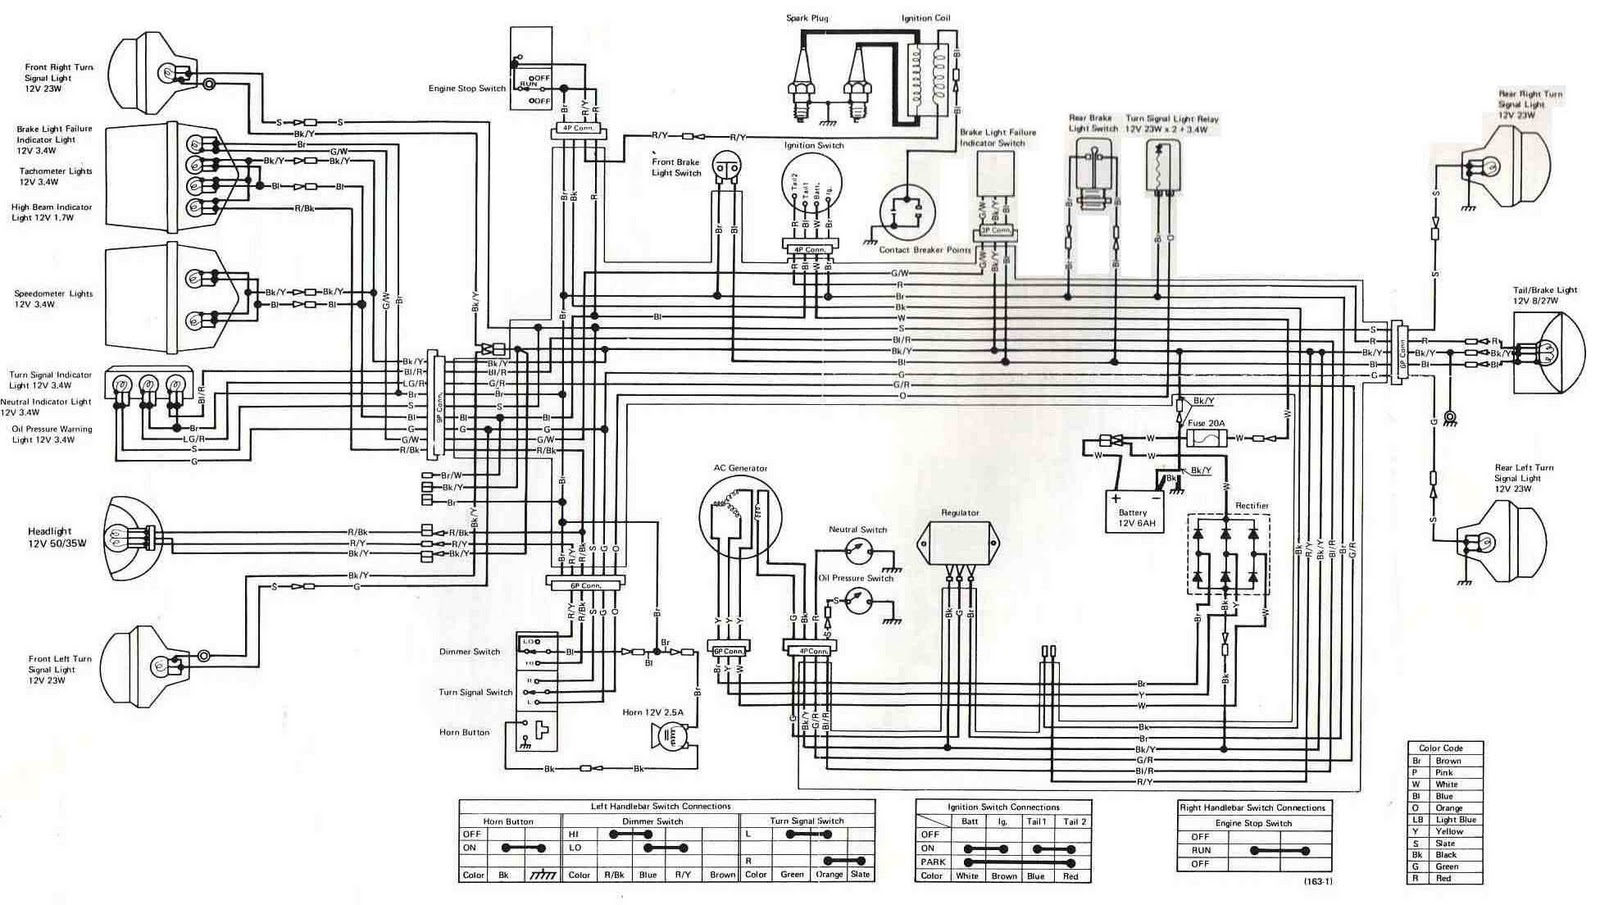 Kawasaki+KZ400+1975+Electrical+Wiring+Diagram kawasaki wiring diagram motorcycle wiring diagrams \u2022 free wiring 1975 dt 175 wiring diagram at bayanpartner.co